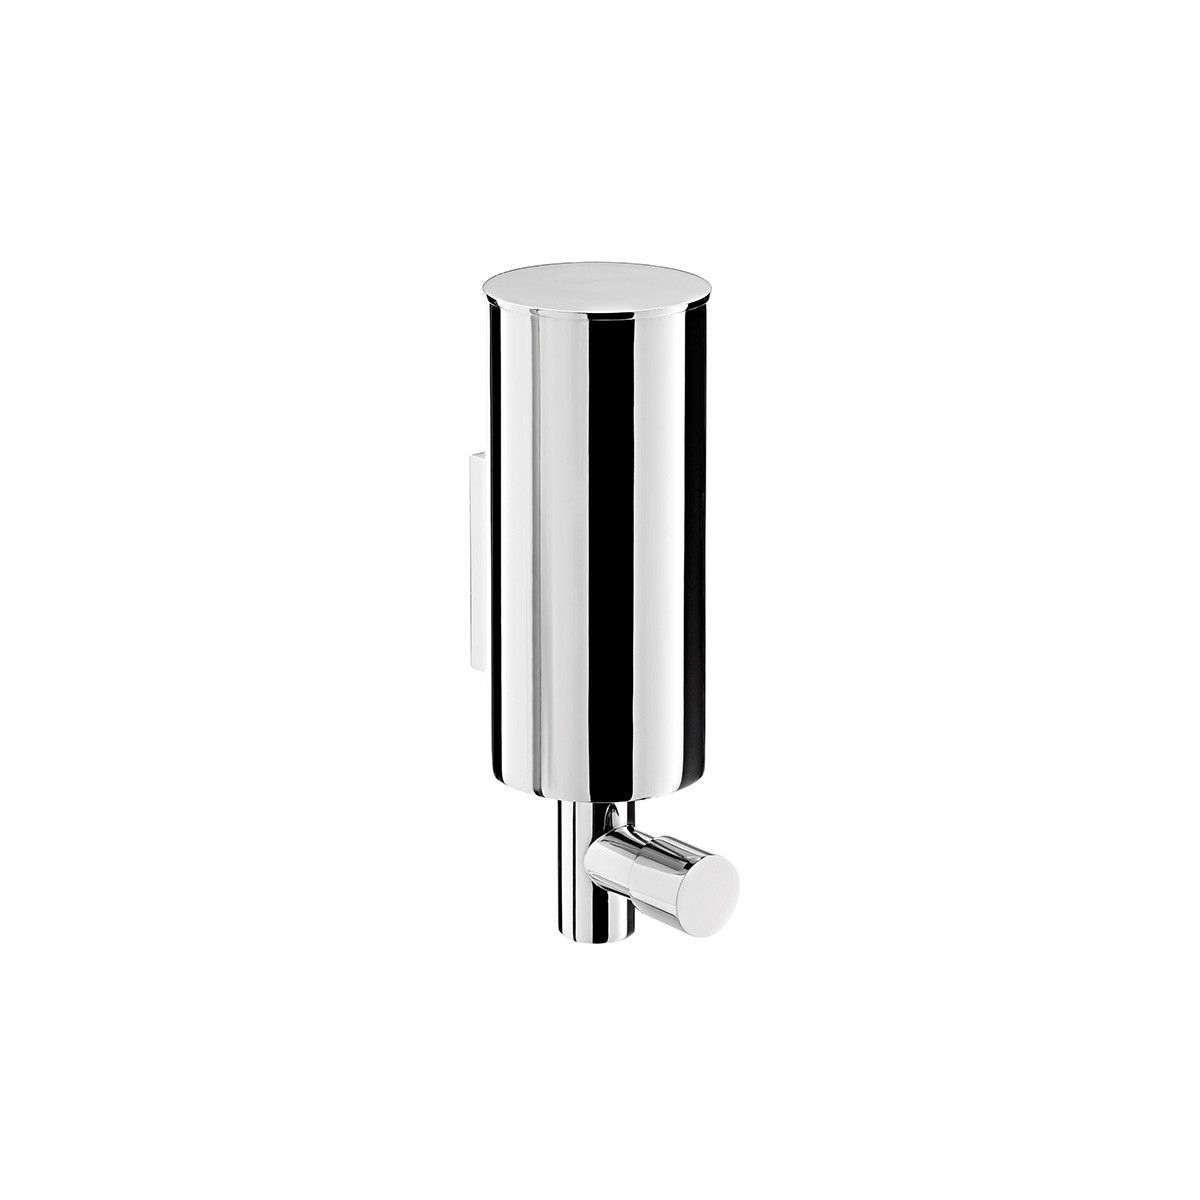 System 352100102 Wall Mount Soap Dispenser From The System